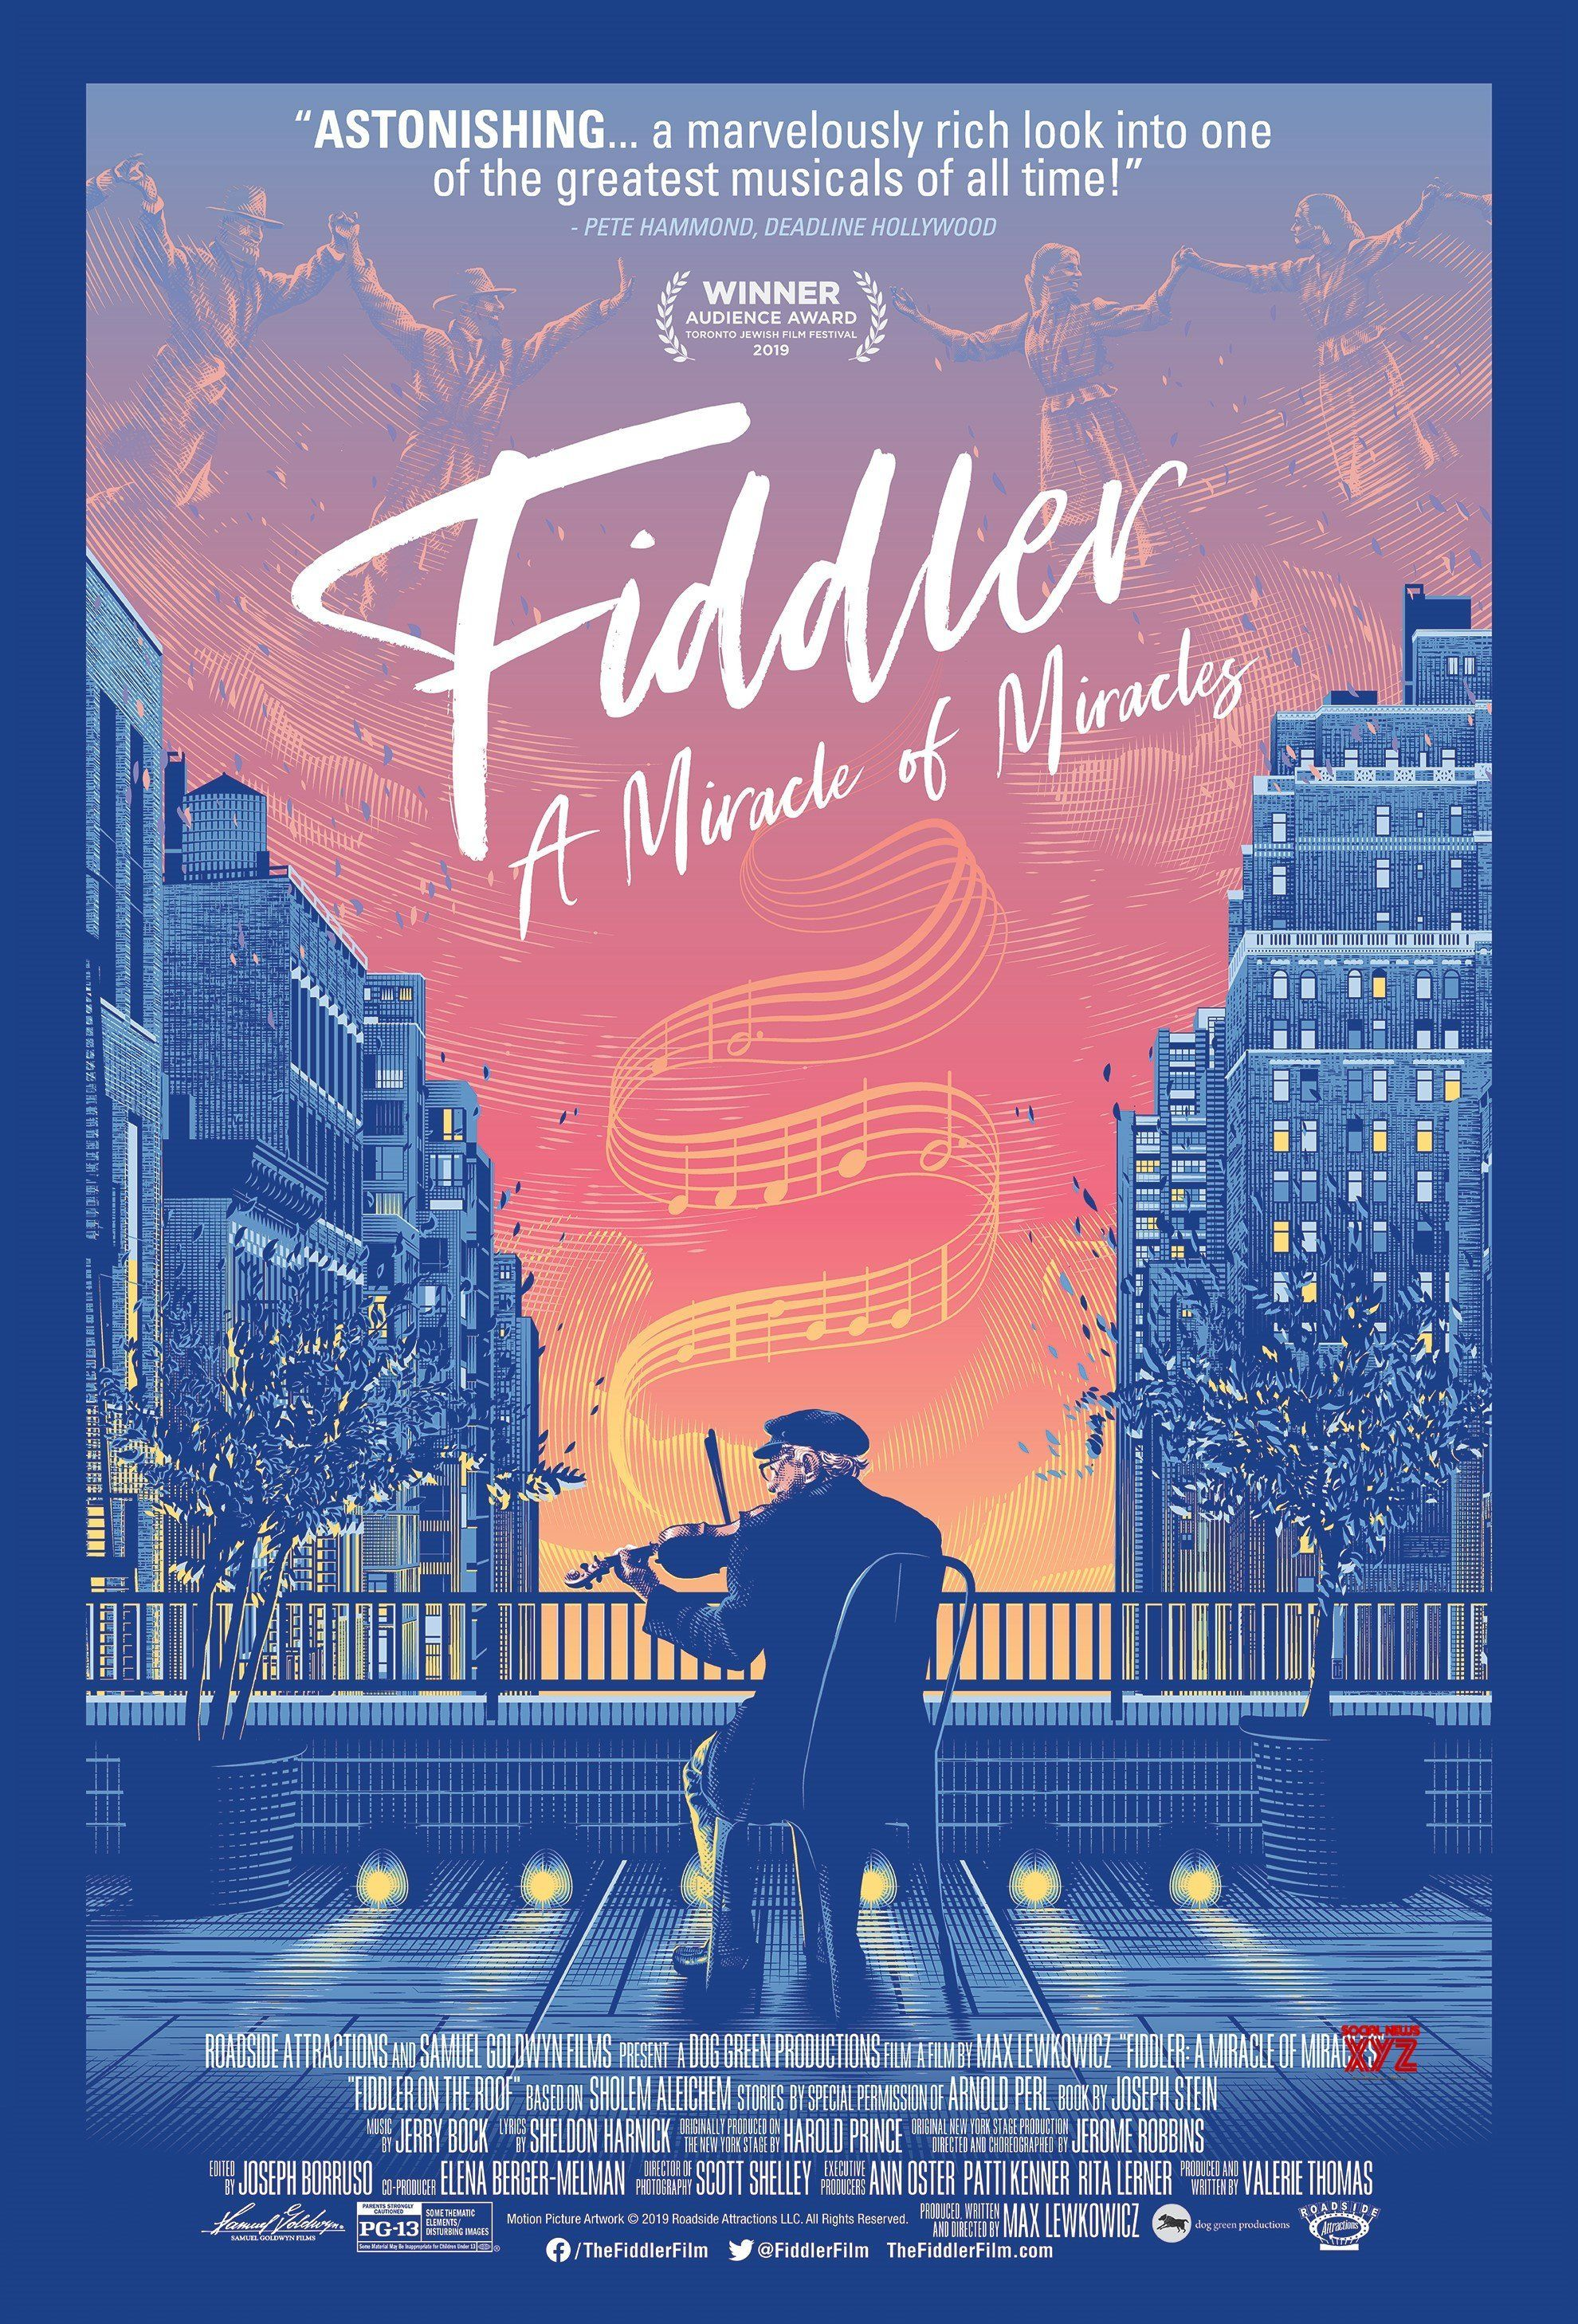 Fiddler A Miracle Of Miracles Movie Hd Poster Social News Xyz Free Movies Online Full Movies Full Movies Online